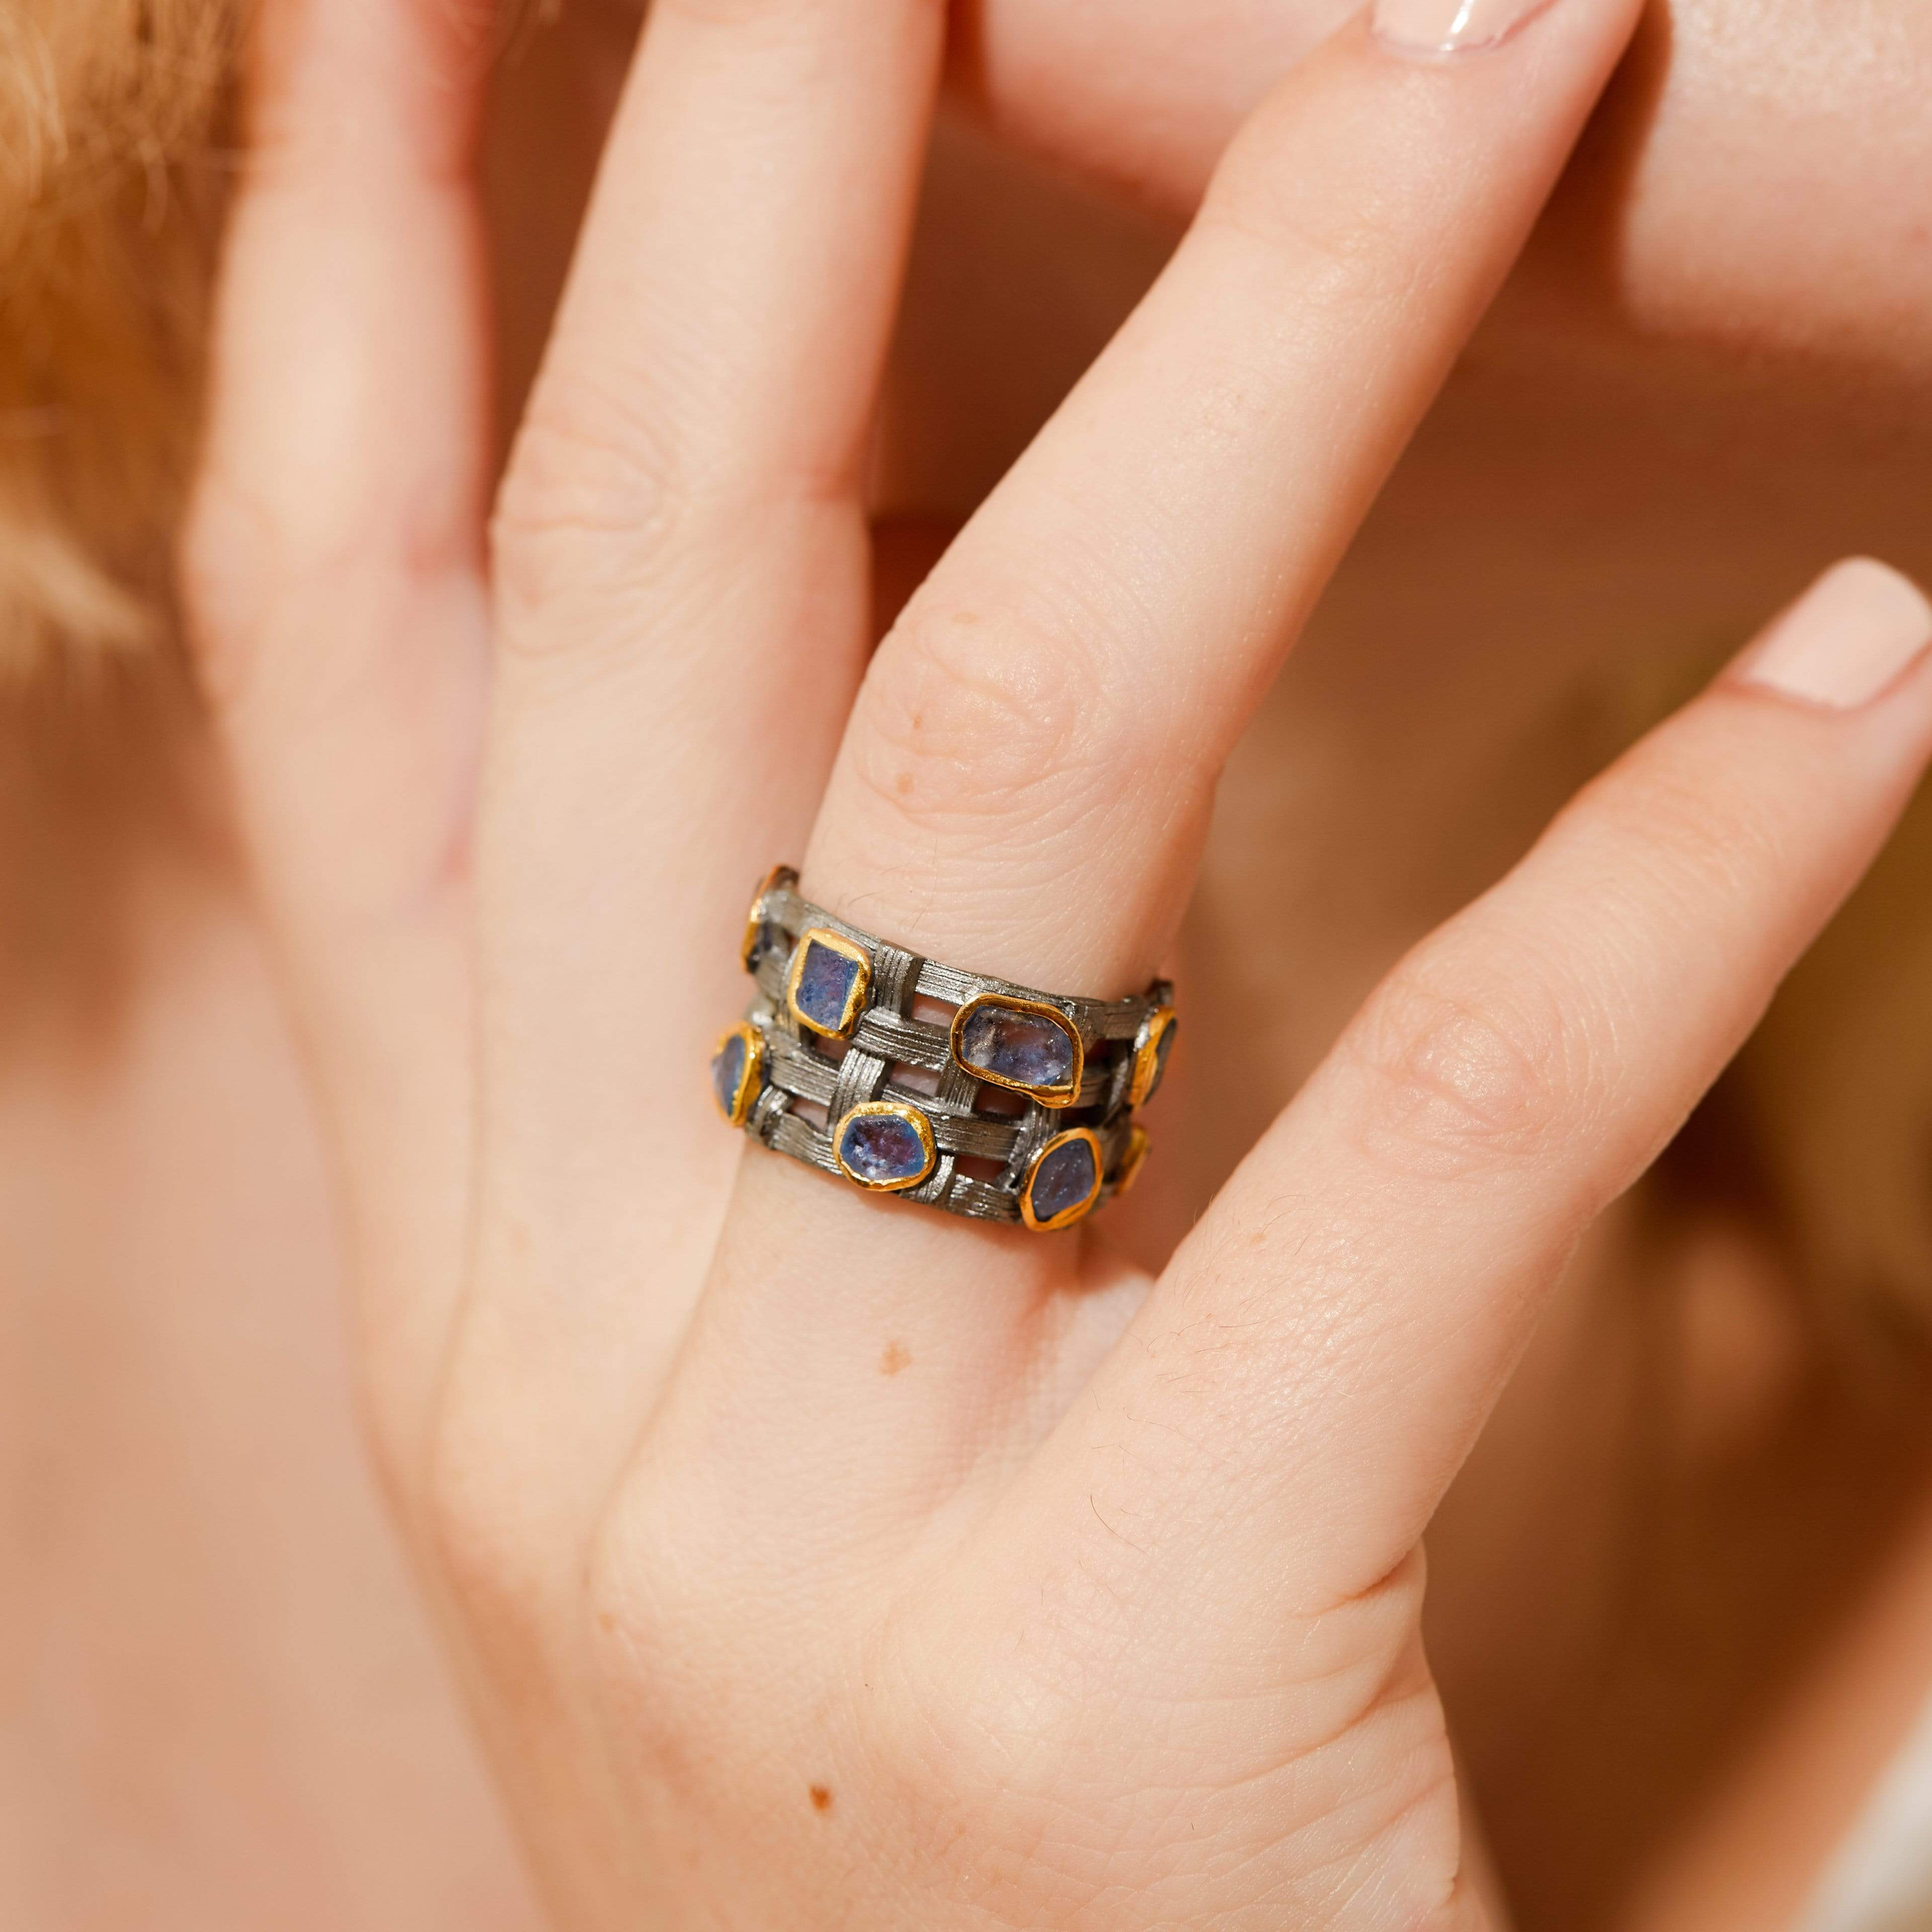 Kalista Ring, Gold, gray, Handmade, Rhodium, Sapphire, spo-disabled, StoneColor:Blue, Style:Everyday, Type:StoneCandyScattered Ring